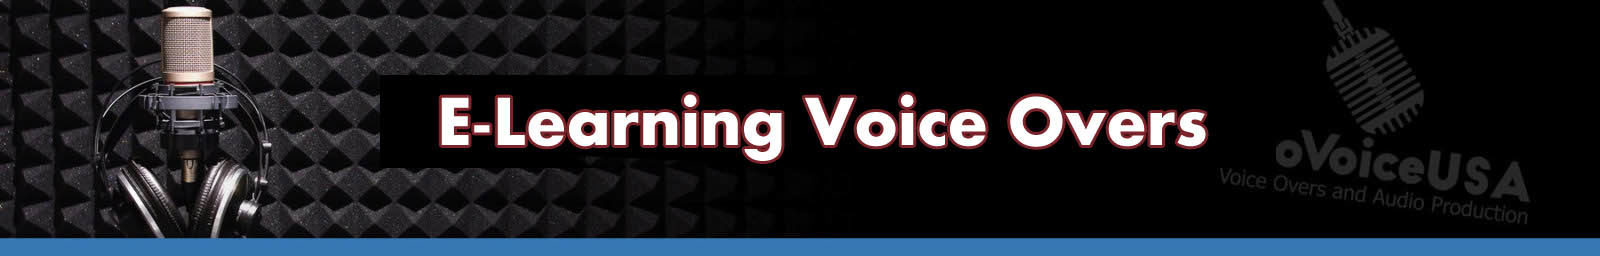 E Learning and Training Voice Overs header